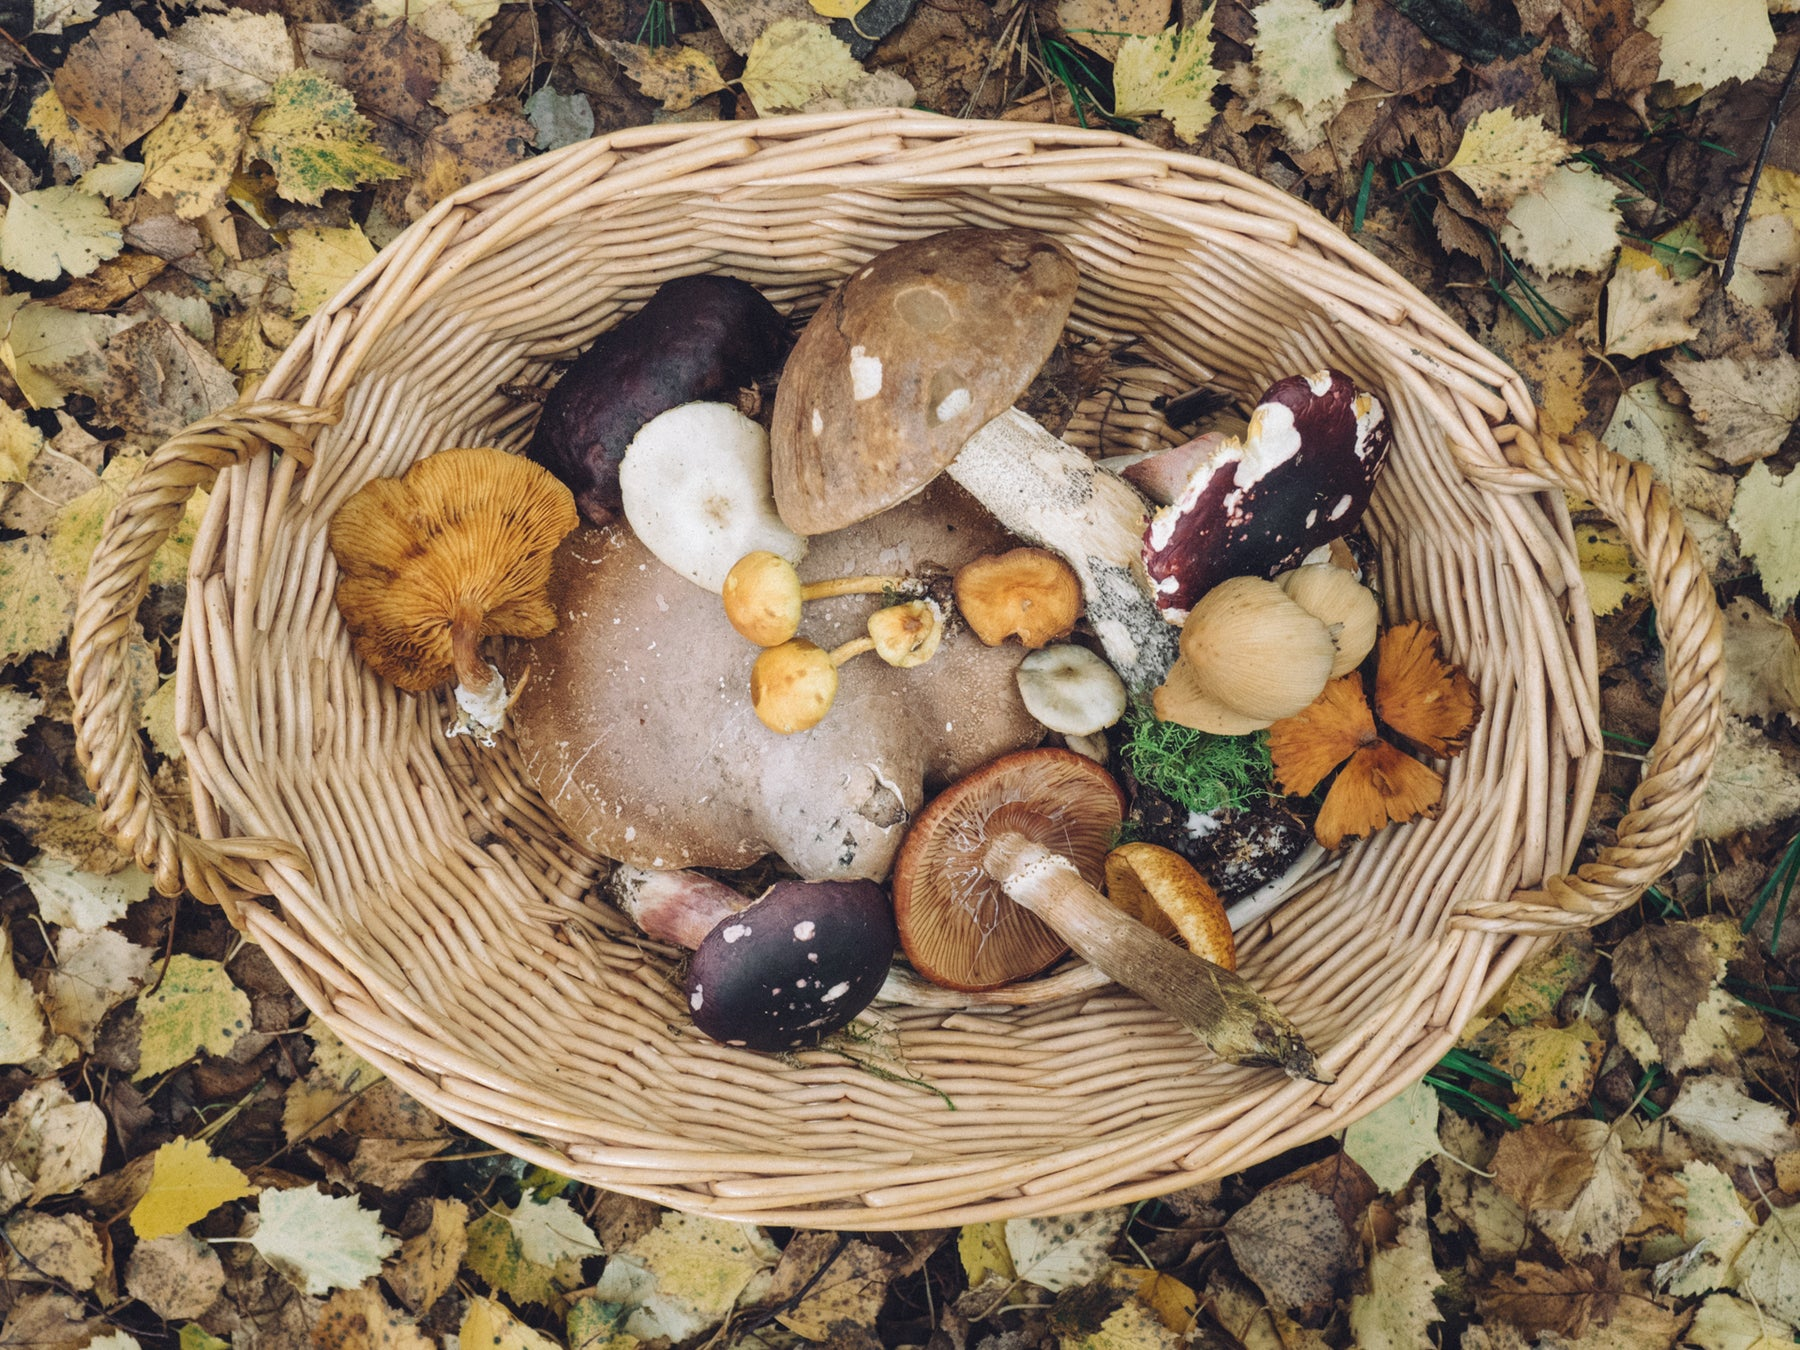 Medicinal Mushrooms And Their 'Magical' Benefits!